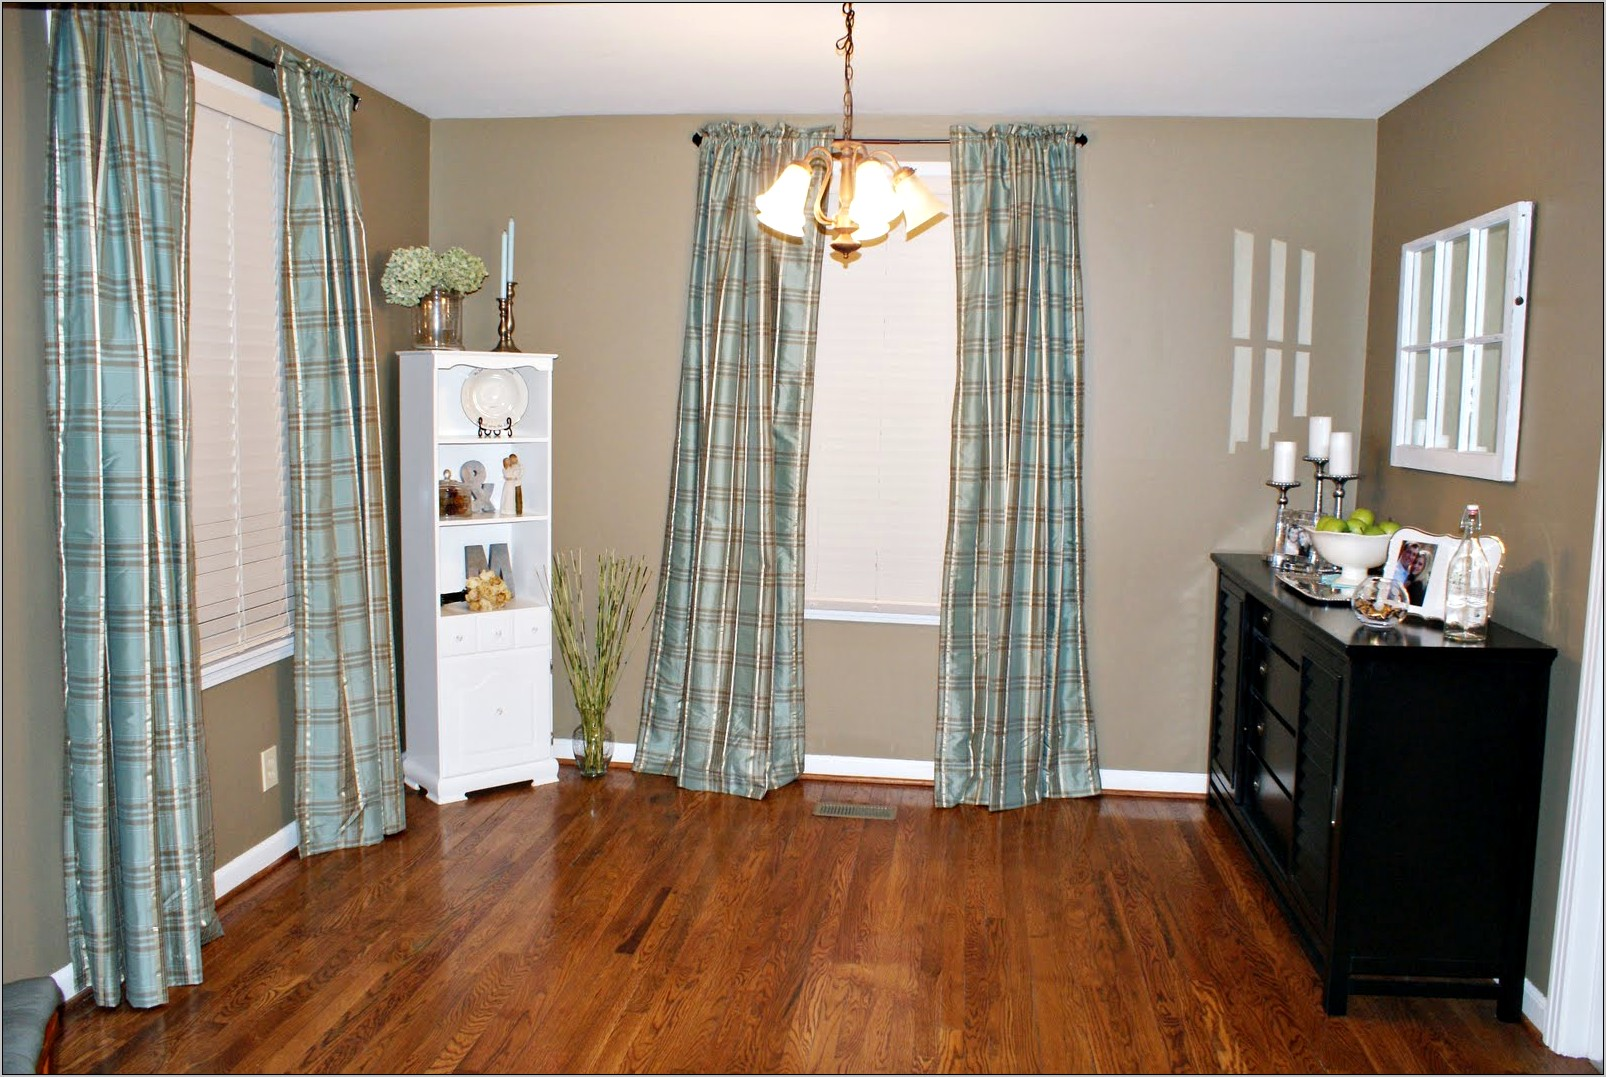 Ideas For Dining Room Without Table